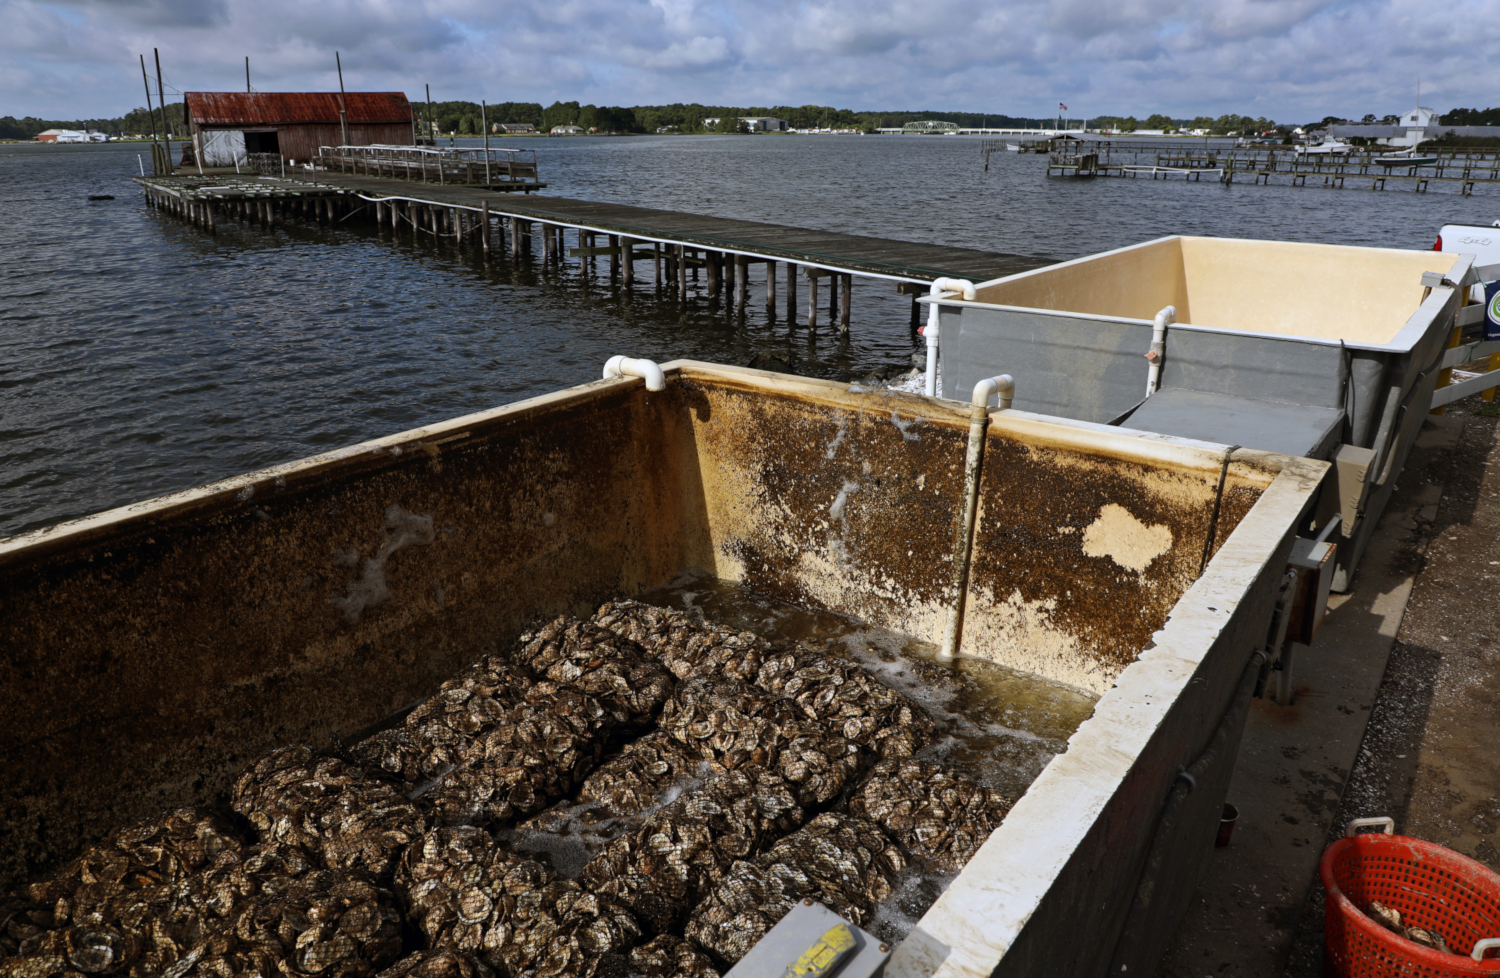 Virginia Oyster Shell Recycling Program (credits: Aileen Devlin | Virginia Sea Grant / Flickr Creative Commons Attribution-NoDerivs 2.0 Generic (CC BY-ND 2.0))